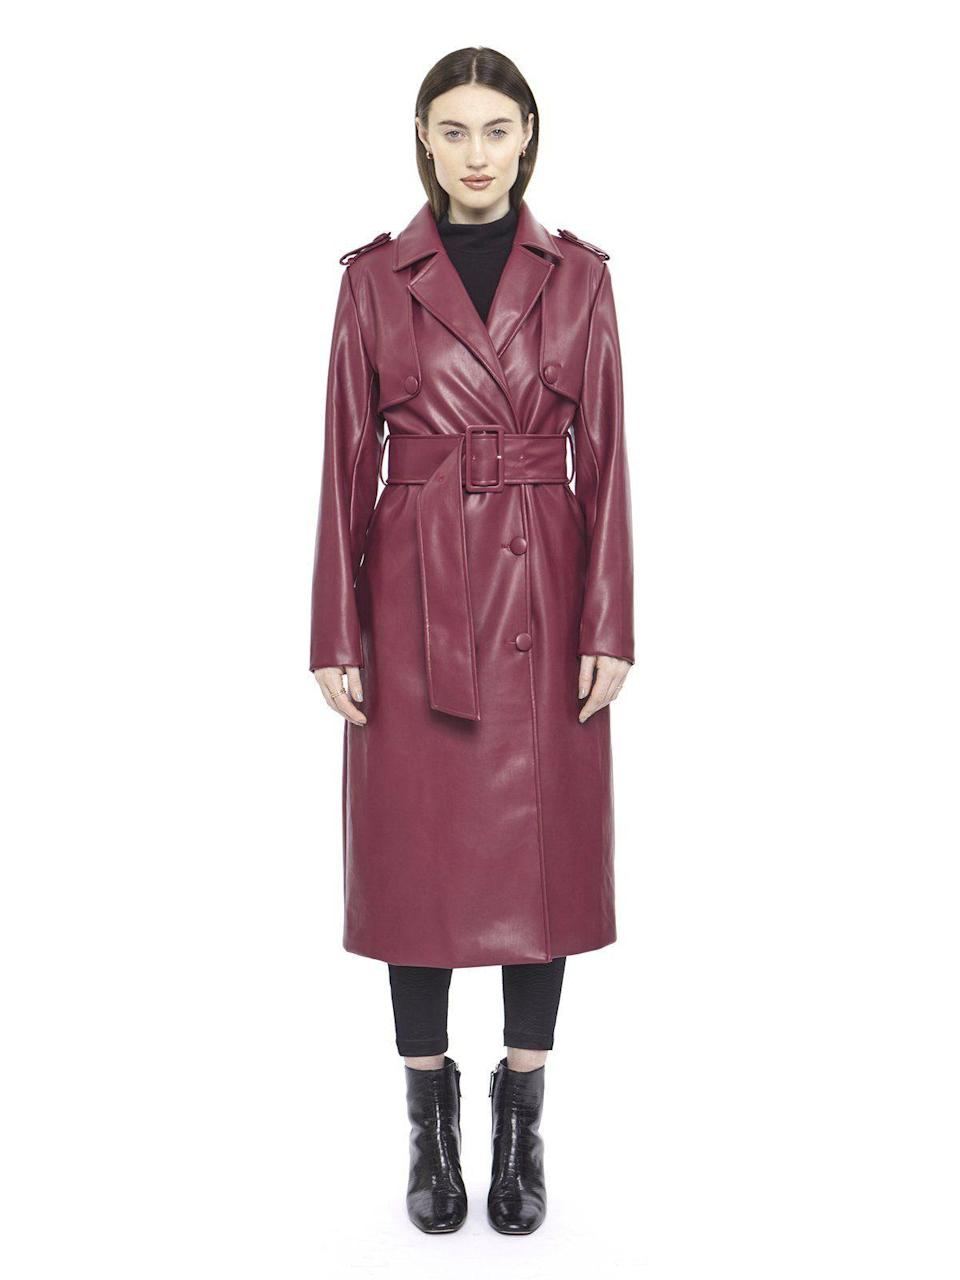 "<p>hilarymacmillan.com</p><p><strong>325.00</strong></p><p><a href=""https://www.hilarymacmillan.com/collections/fw20-1/products/maroon-leather-trench"" rel=""nofollow noopener"" target=""_blank"" data-ylk=""slk:Shop Now"" class=""link rapid-noclick-resp"">Shop Now</a></p><p>Trench coats will never go out of style. Up your trench game with this faux leather version by Hilary Macmillan.</p>"